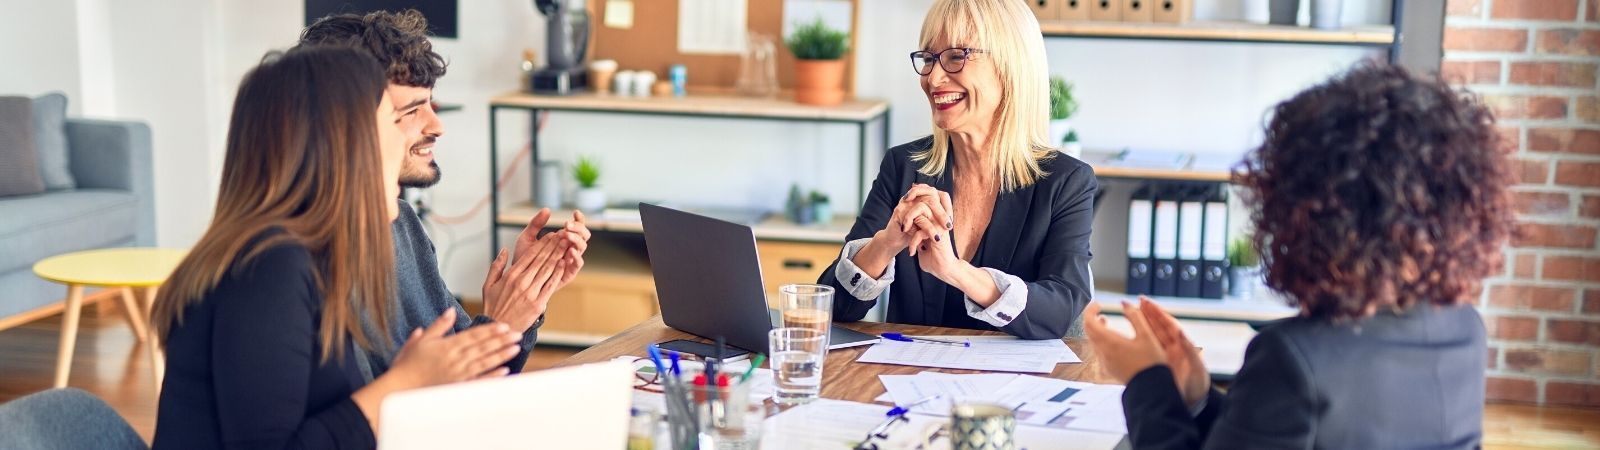 Three professional women and one man sitting around a table in a work meeting smiling and bouncing ideas off one another.